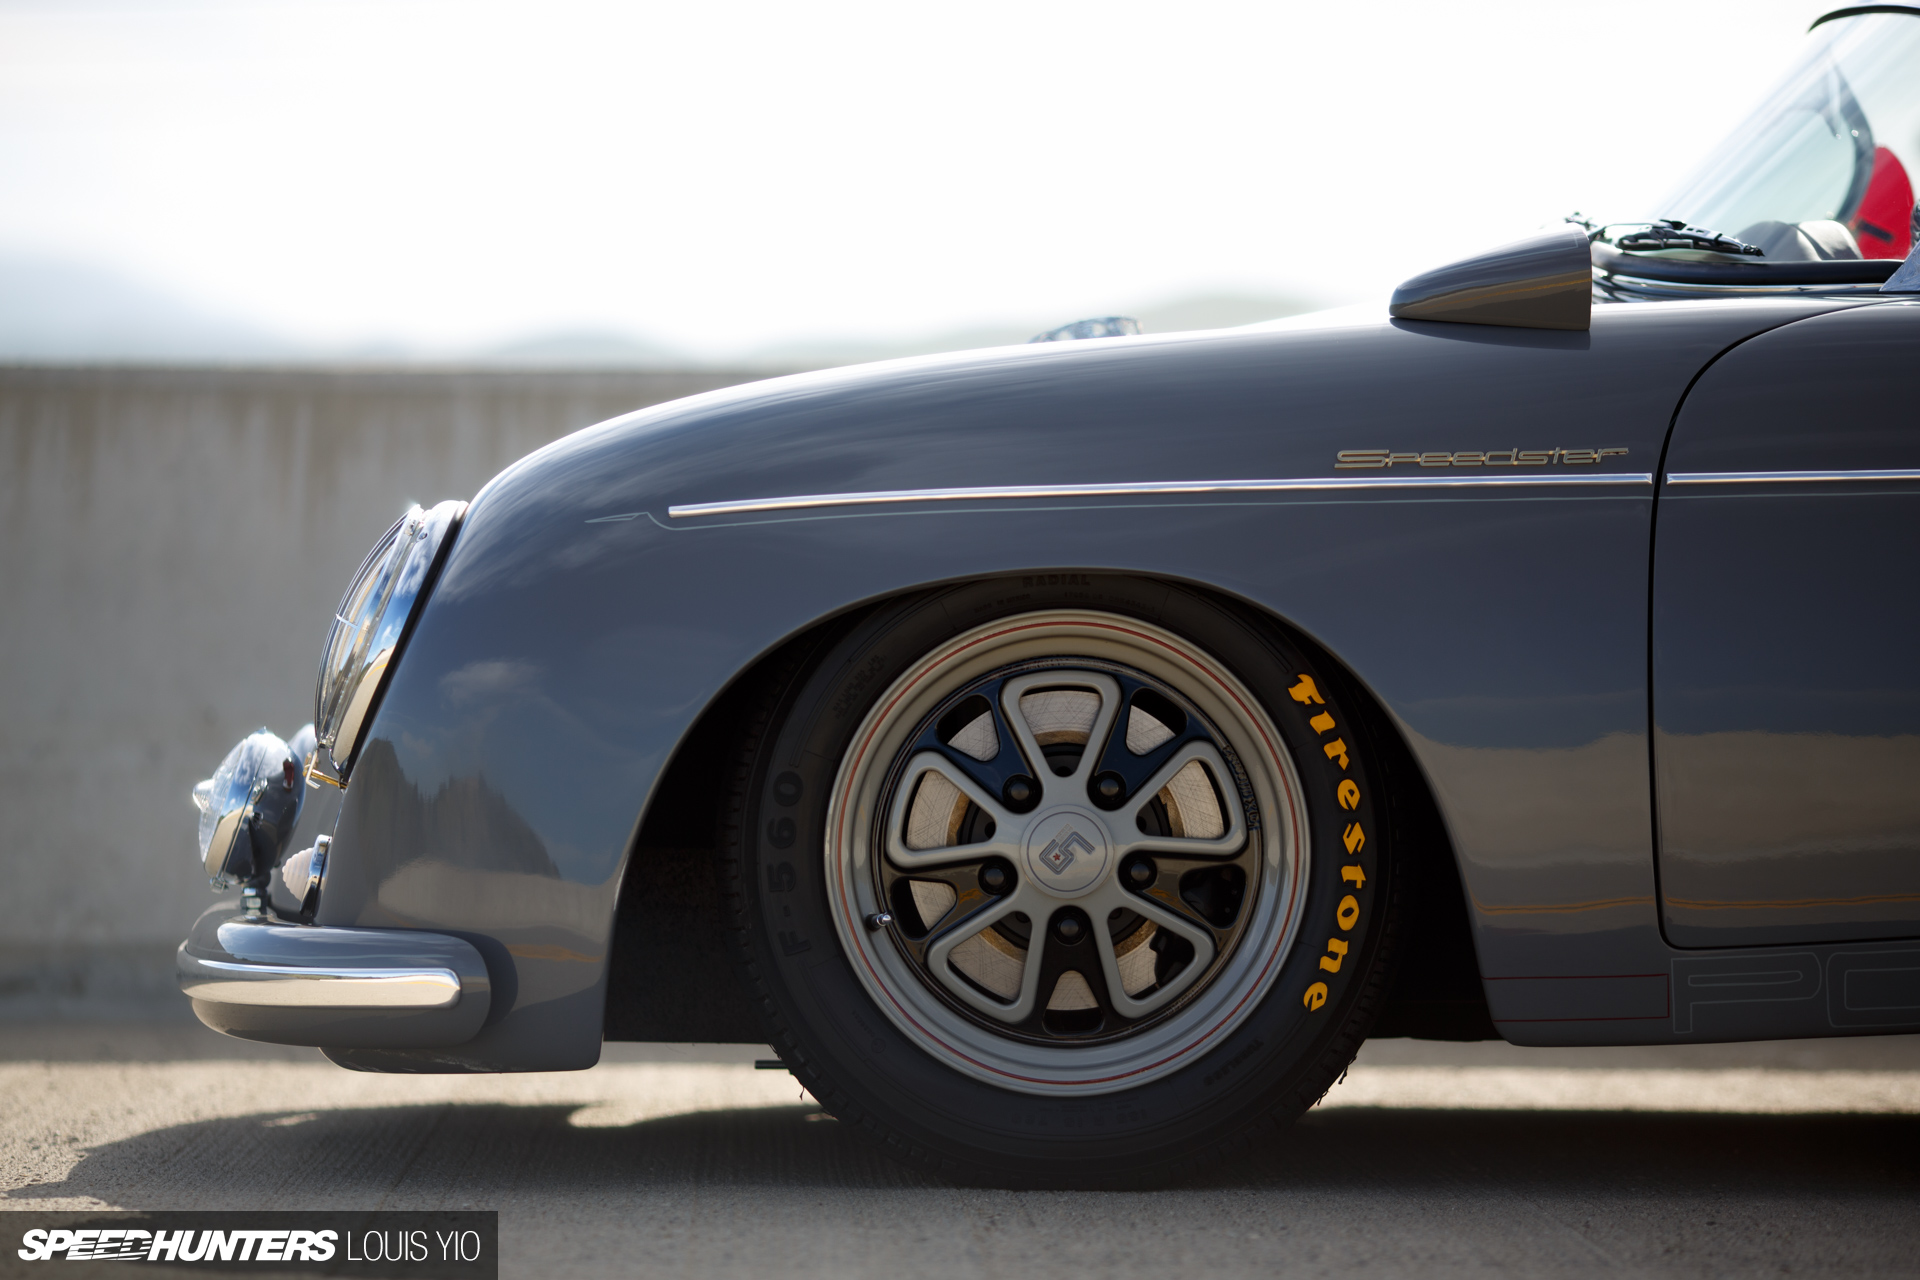 15 Inch Tires >> Real? Replica? Who Cares? The Outlaw Speedster - Speedhunters